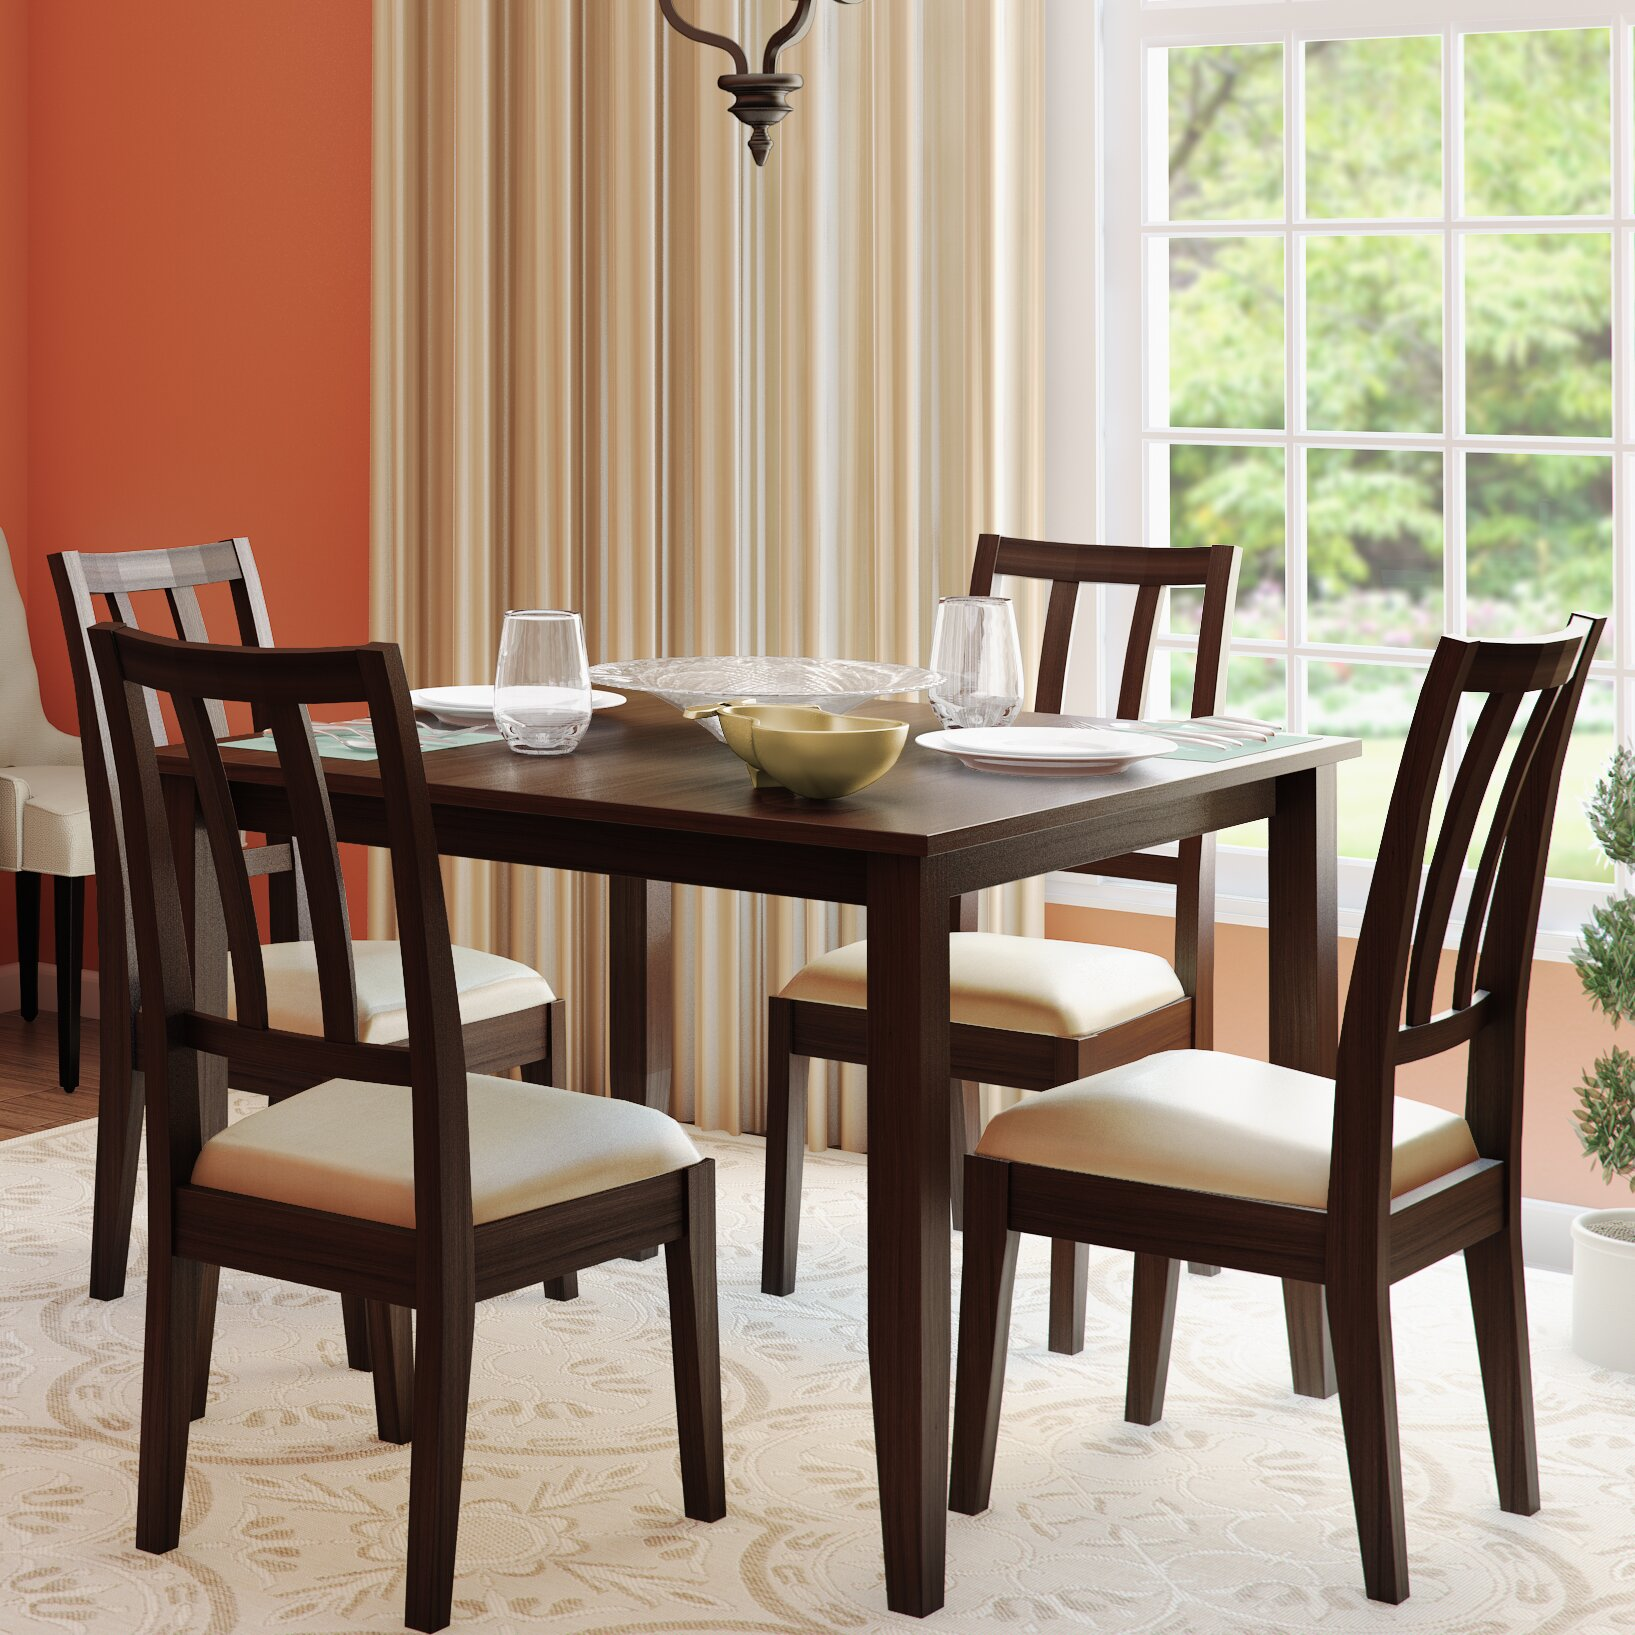 Alcott hill primrose road 5 piece dining set reviews for Kitchen dining room furniture